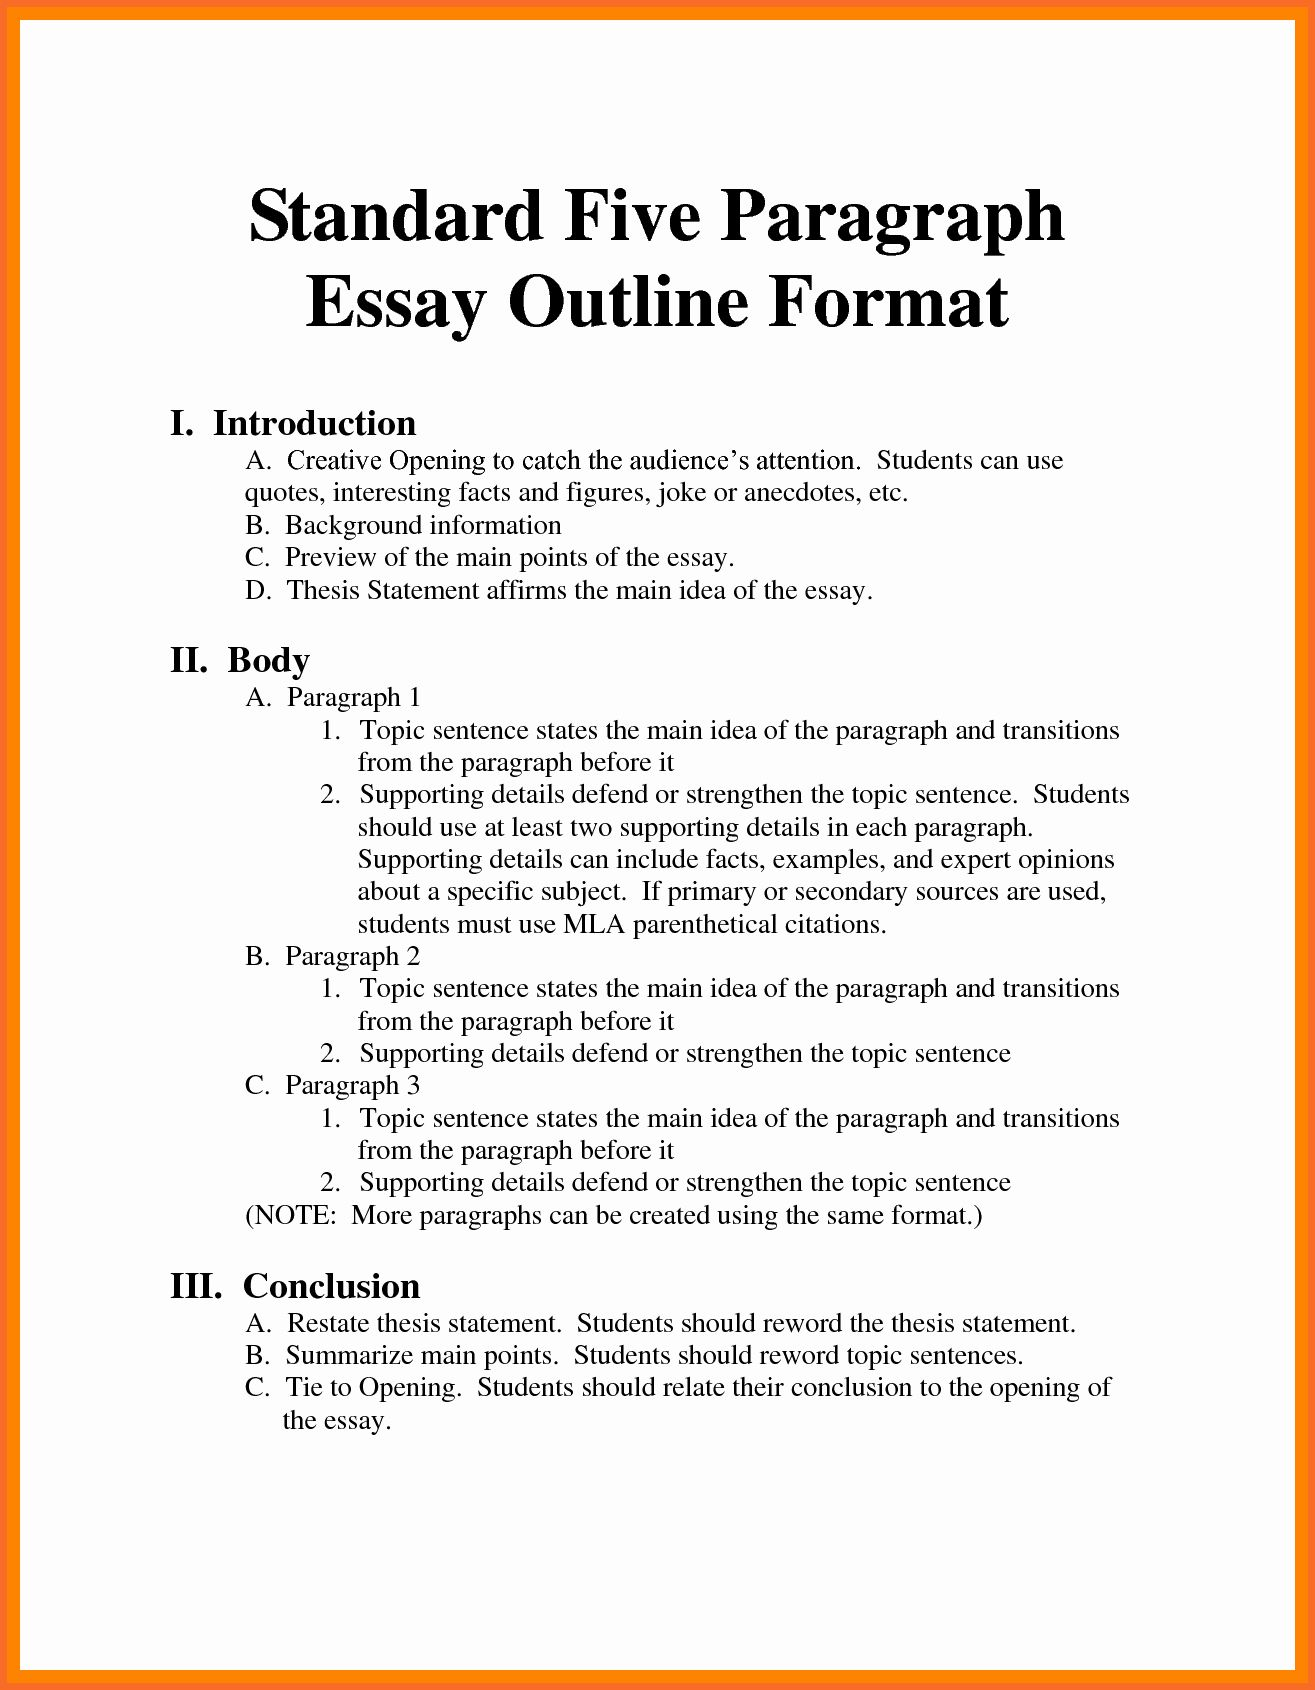 30 Essay Outline Mla In 2020 With Images Essay Outline Essay